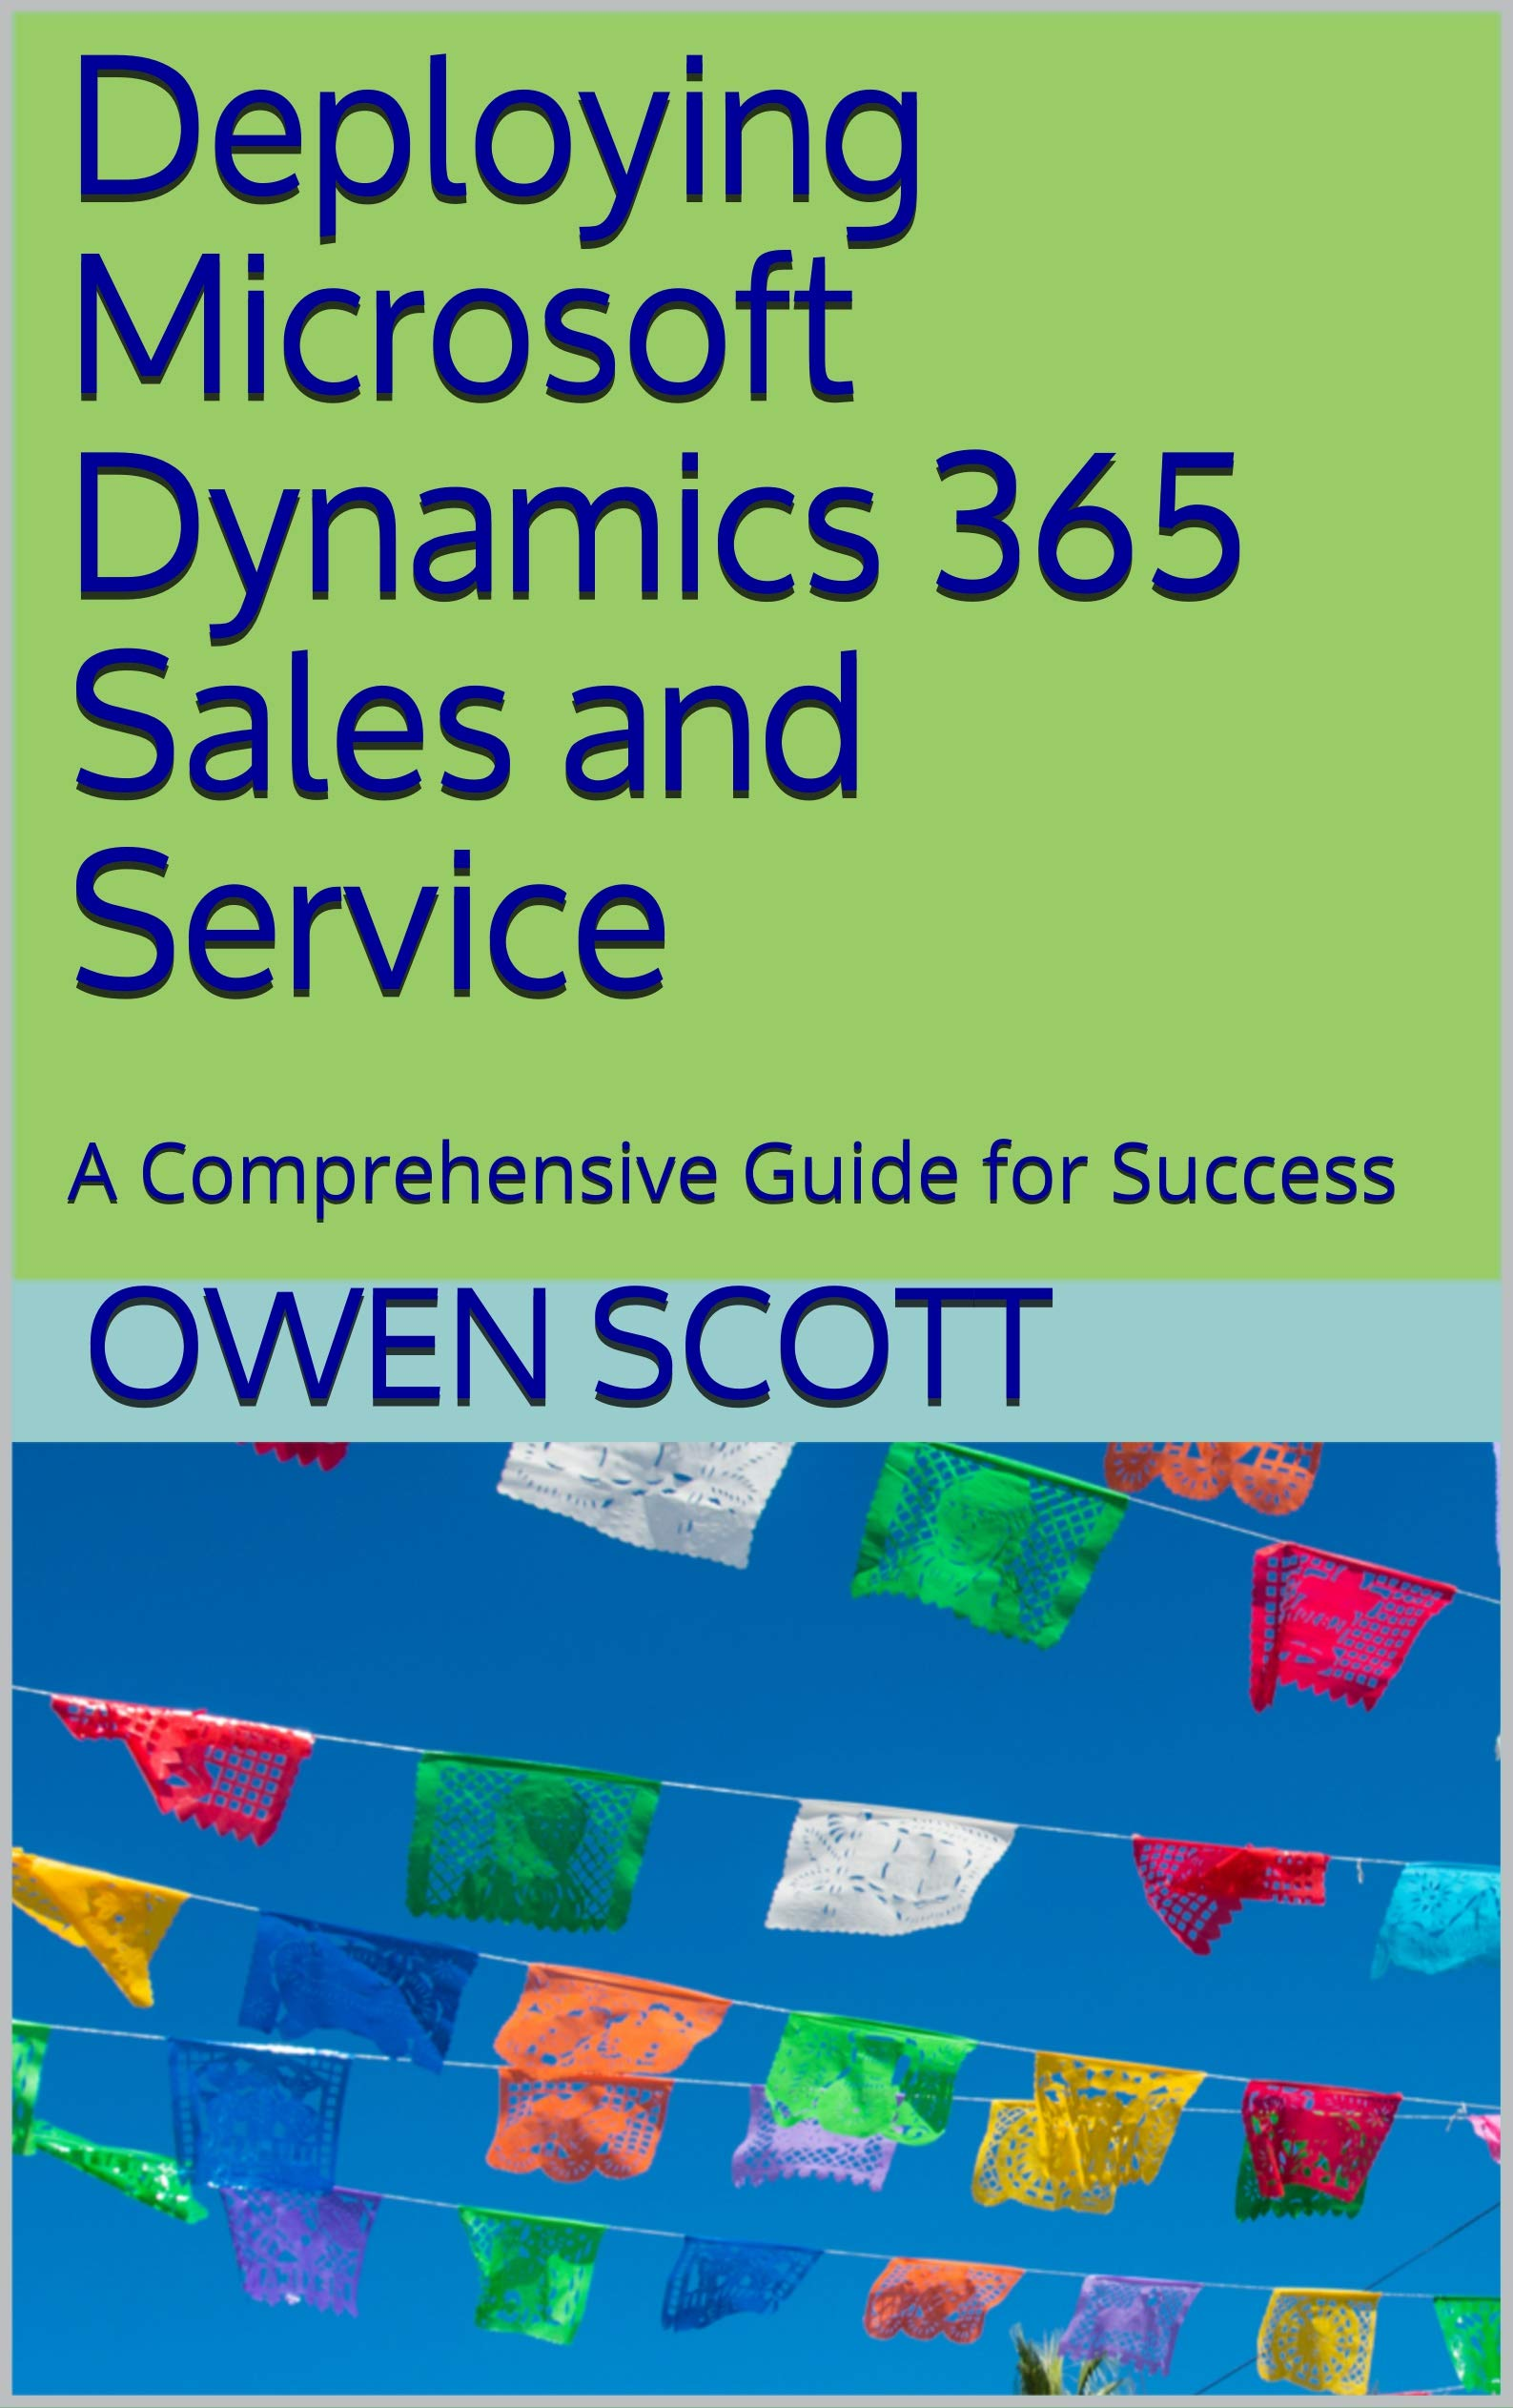 Deploying Microsoft Dynamics 365 Sales and Service: A Comprehensive Guide for Success